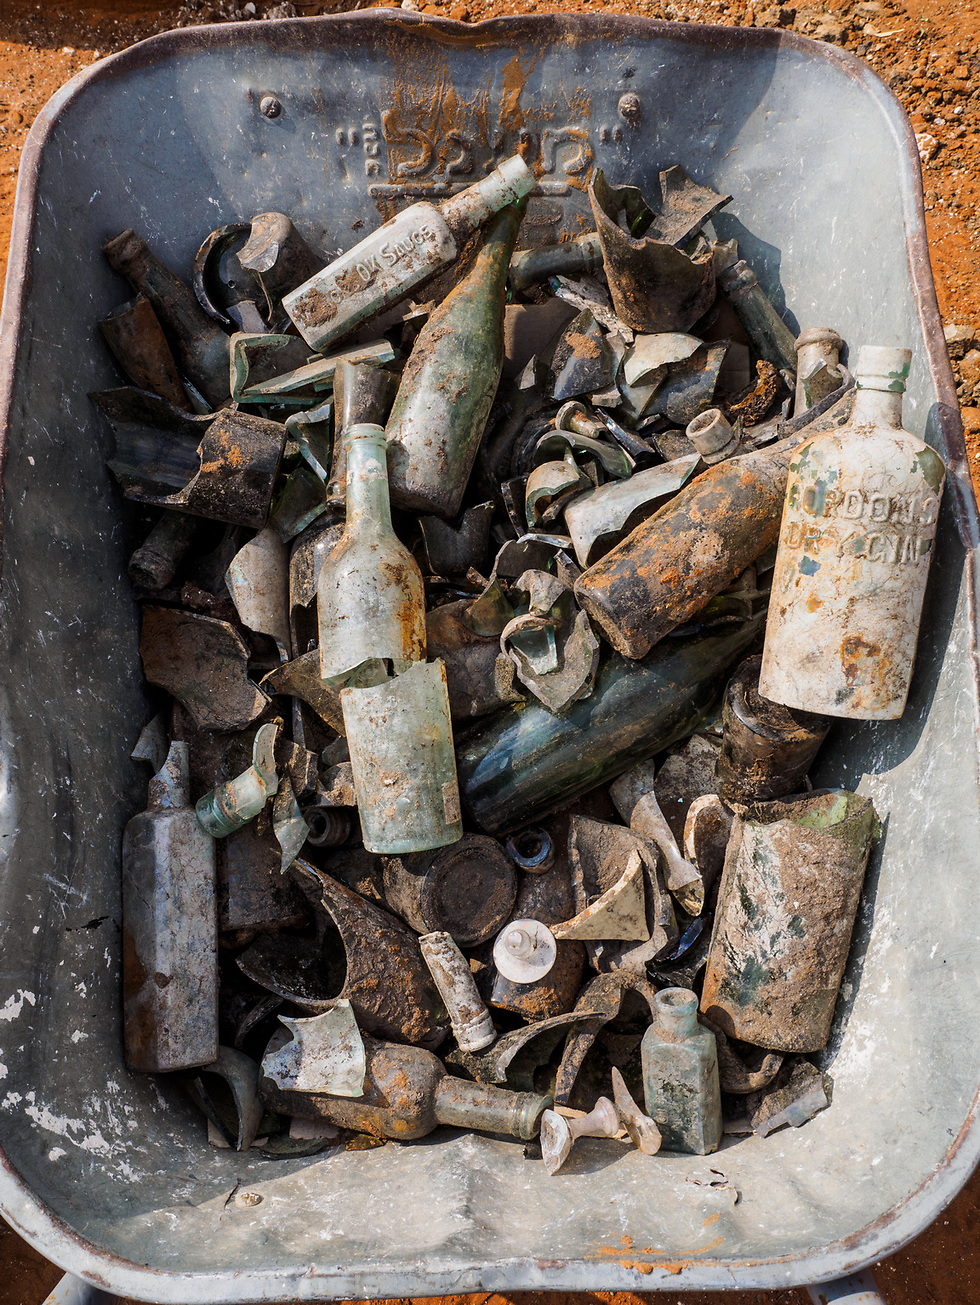 Bottles and other artifacts discovered in the refuse pit. (Photo: Assaf Peretz, courtesy of IAA)